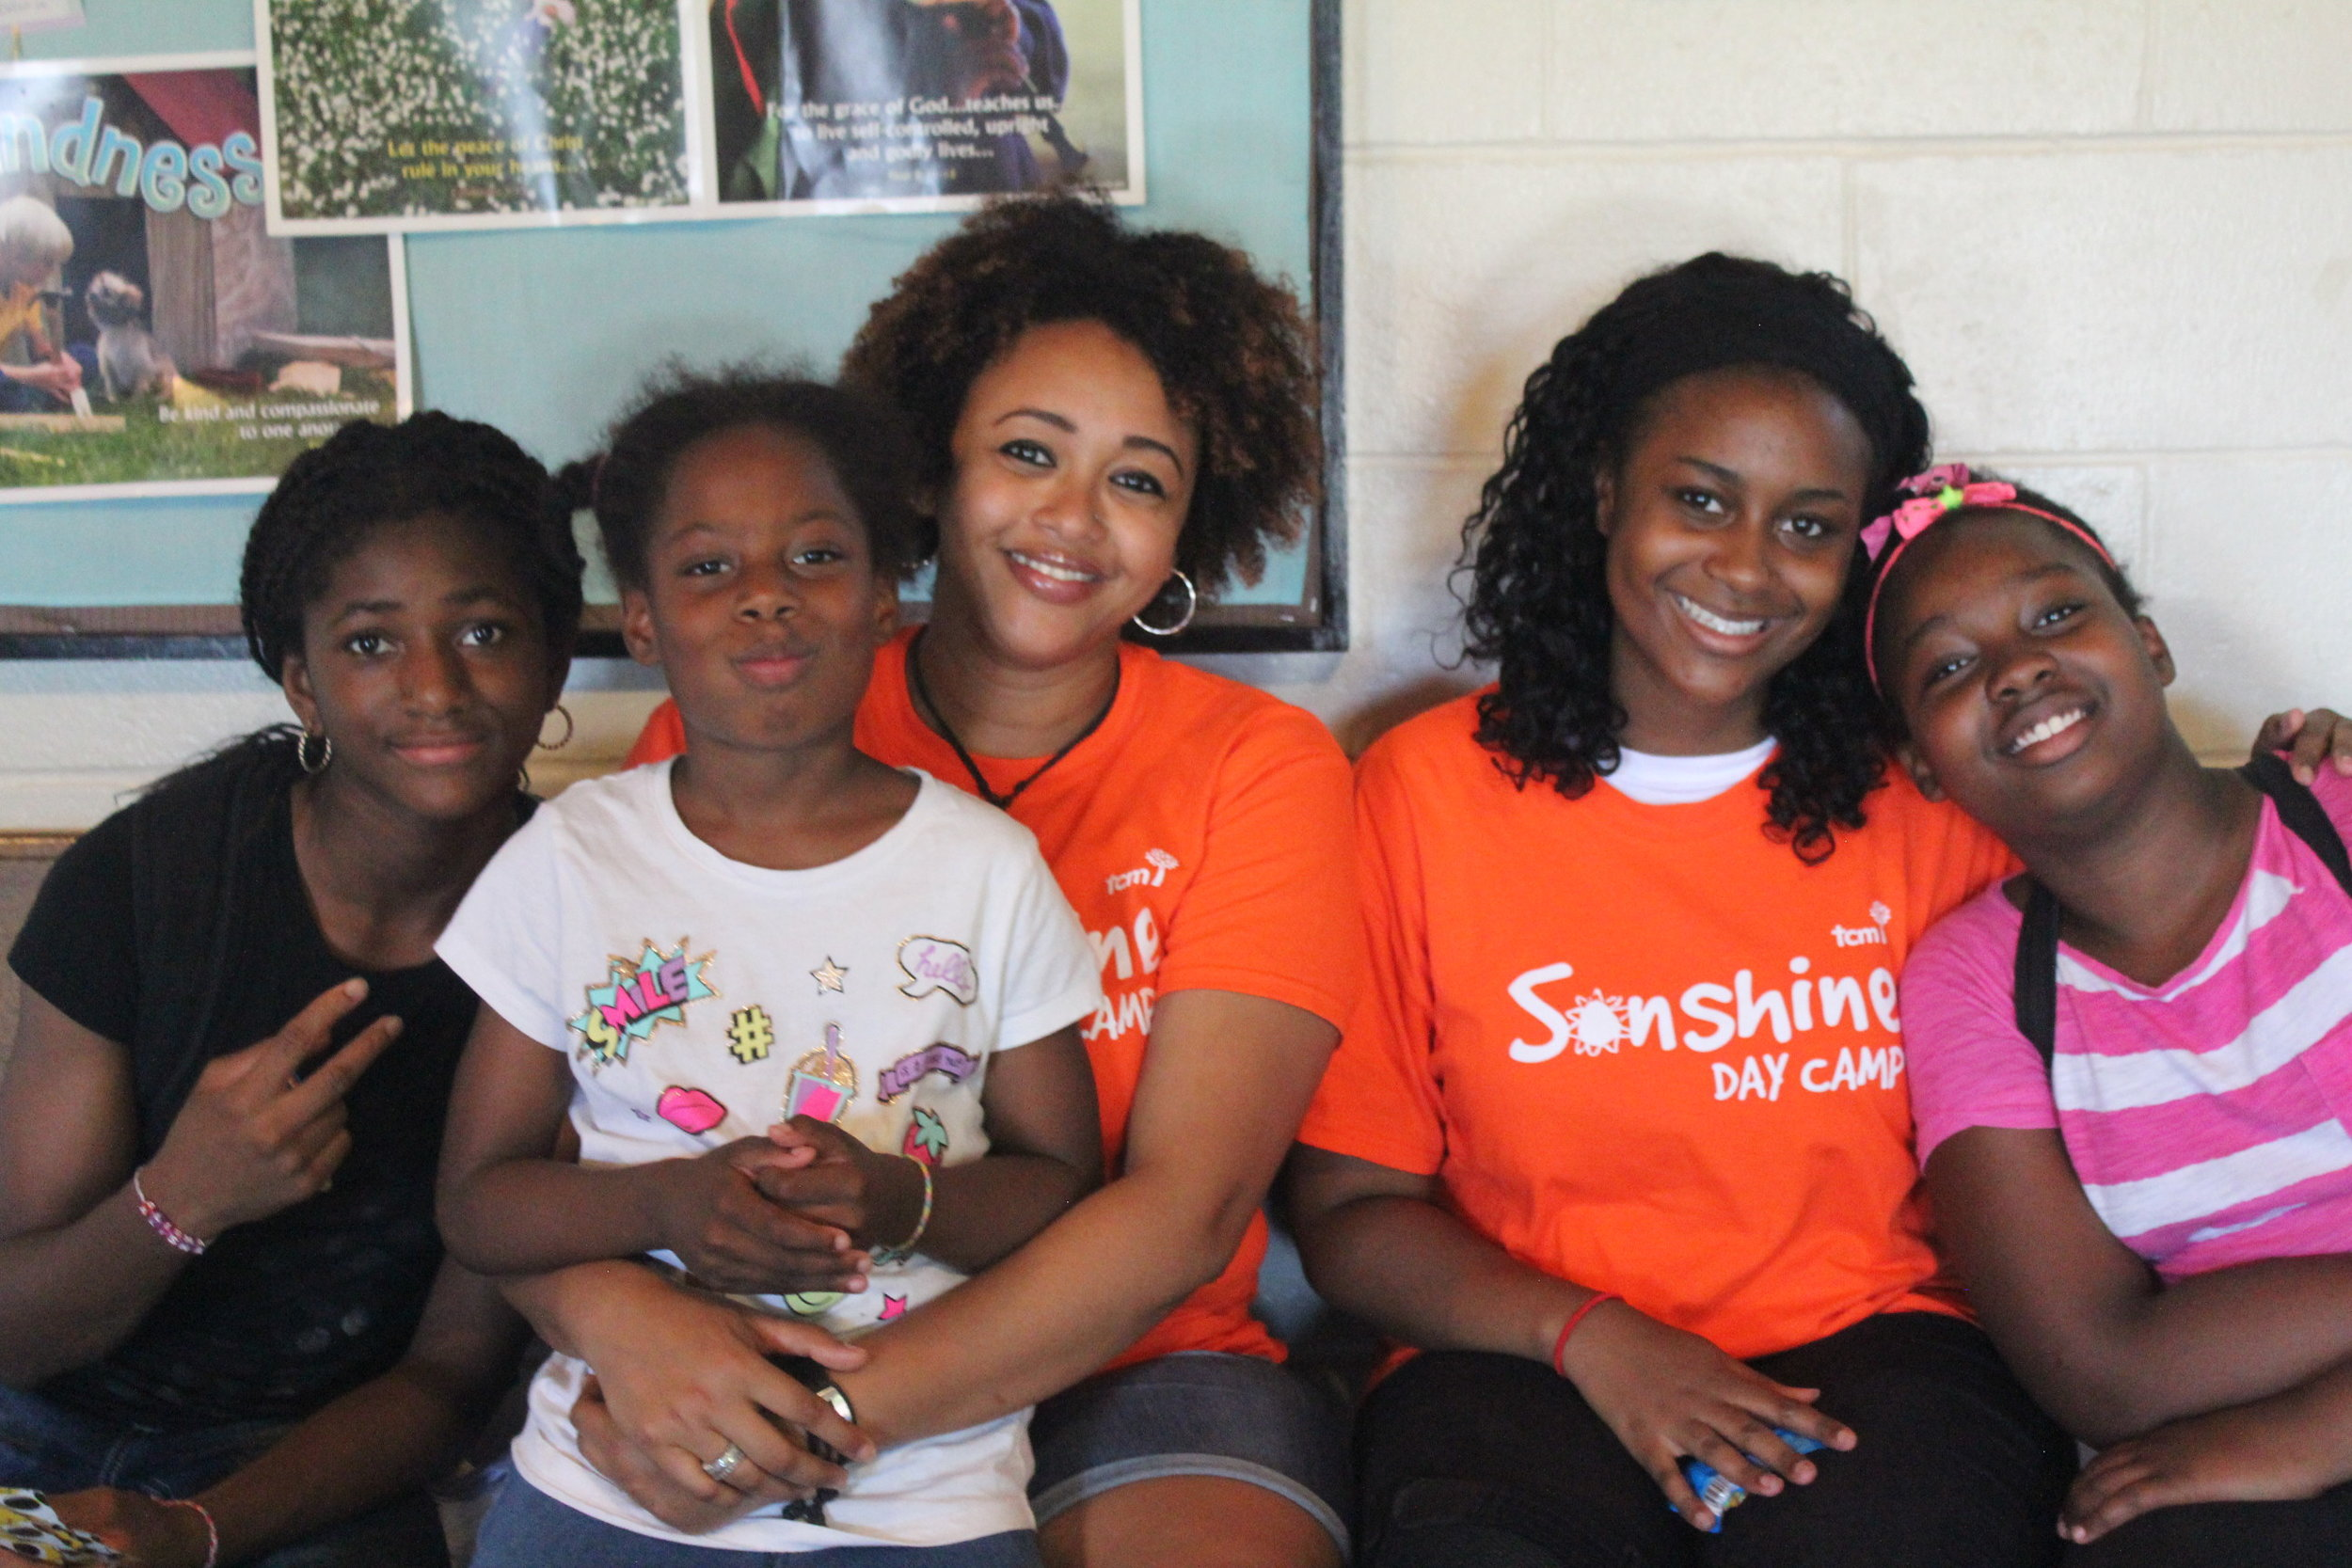 Enniael (second from the right), with kids from Kingston-Galloway.